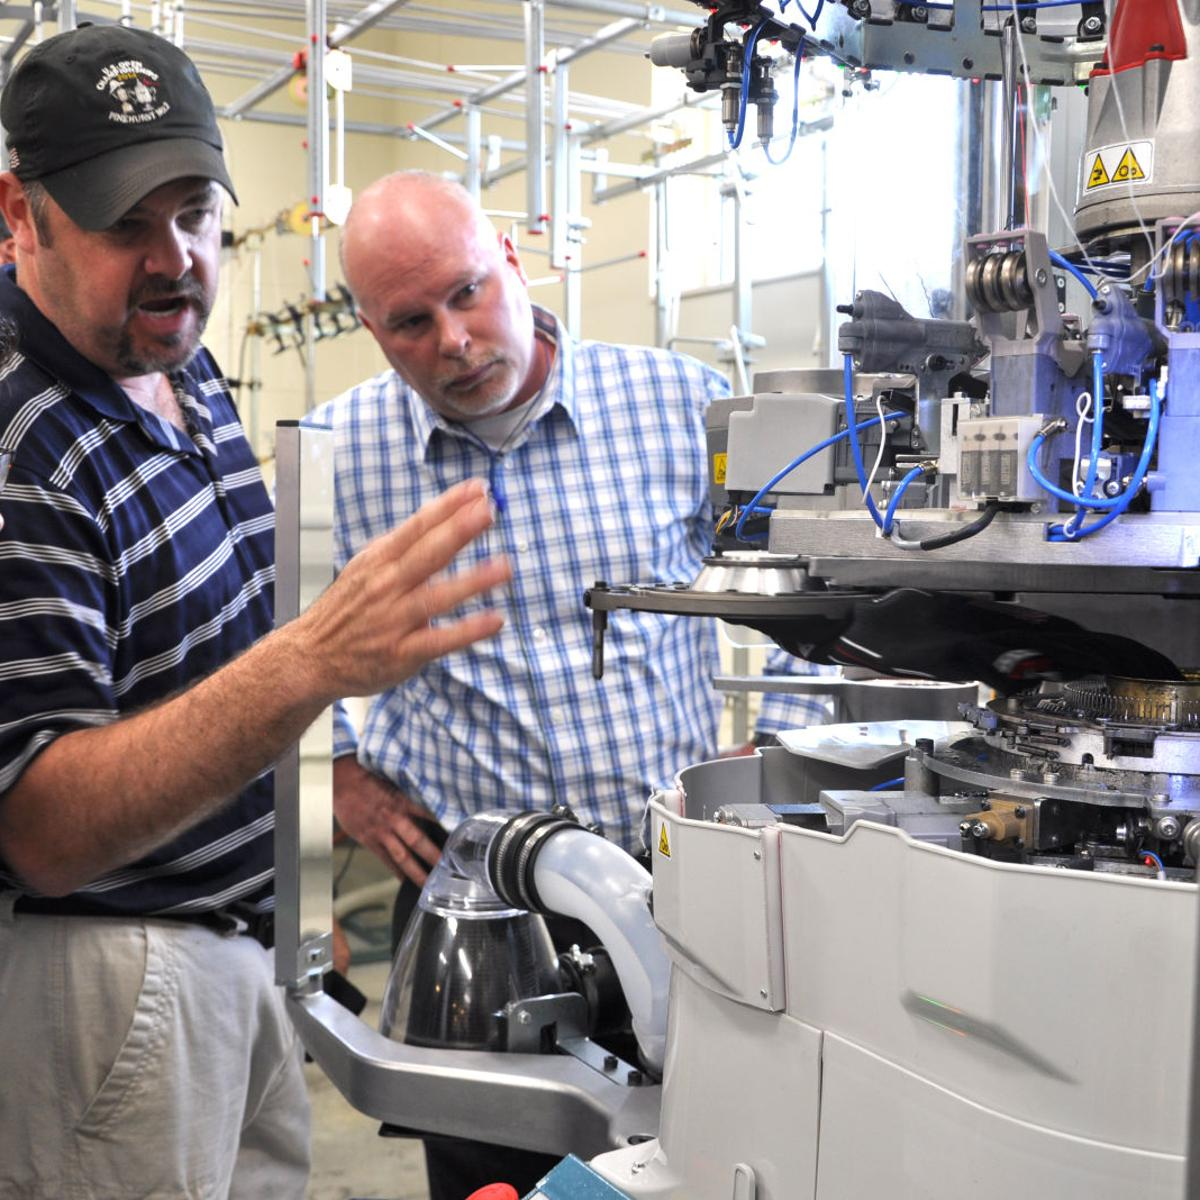 Hosiery equipment manufacturer showcases machines in Conover | News